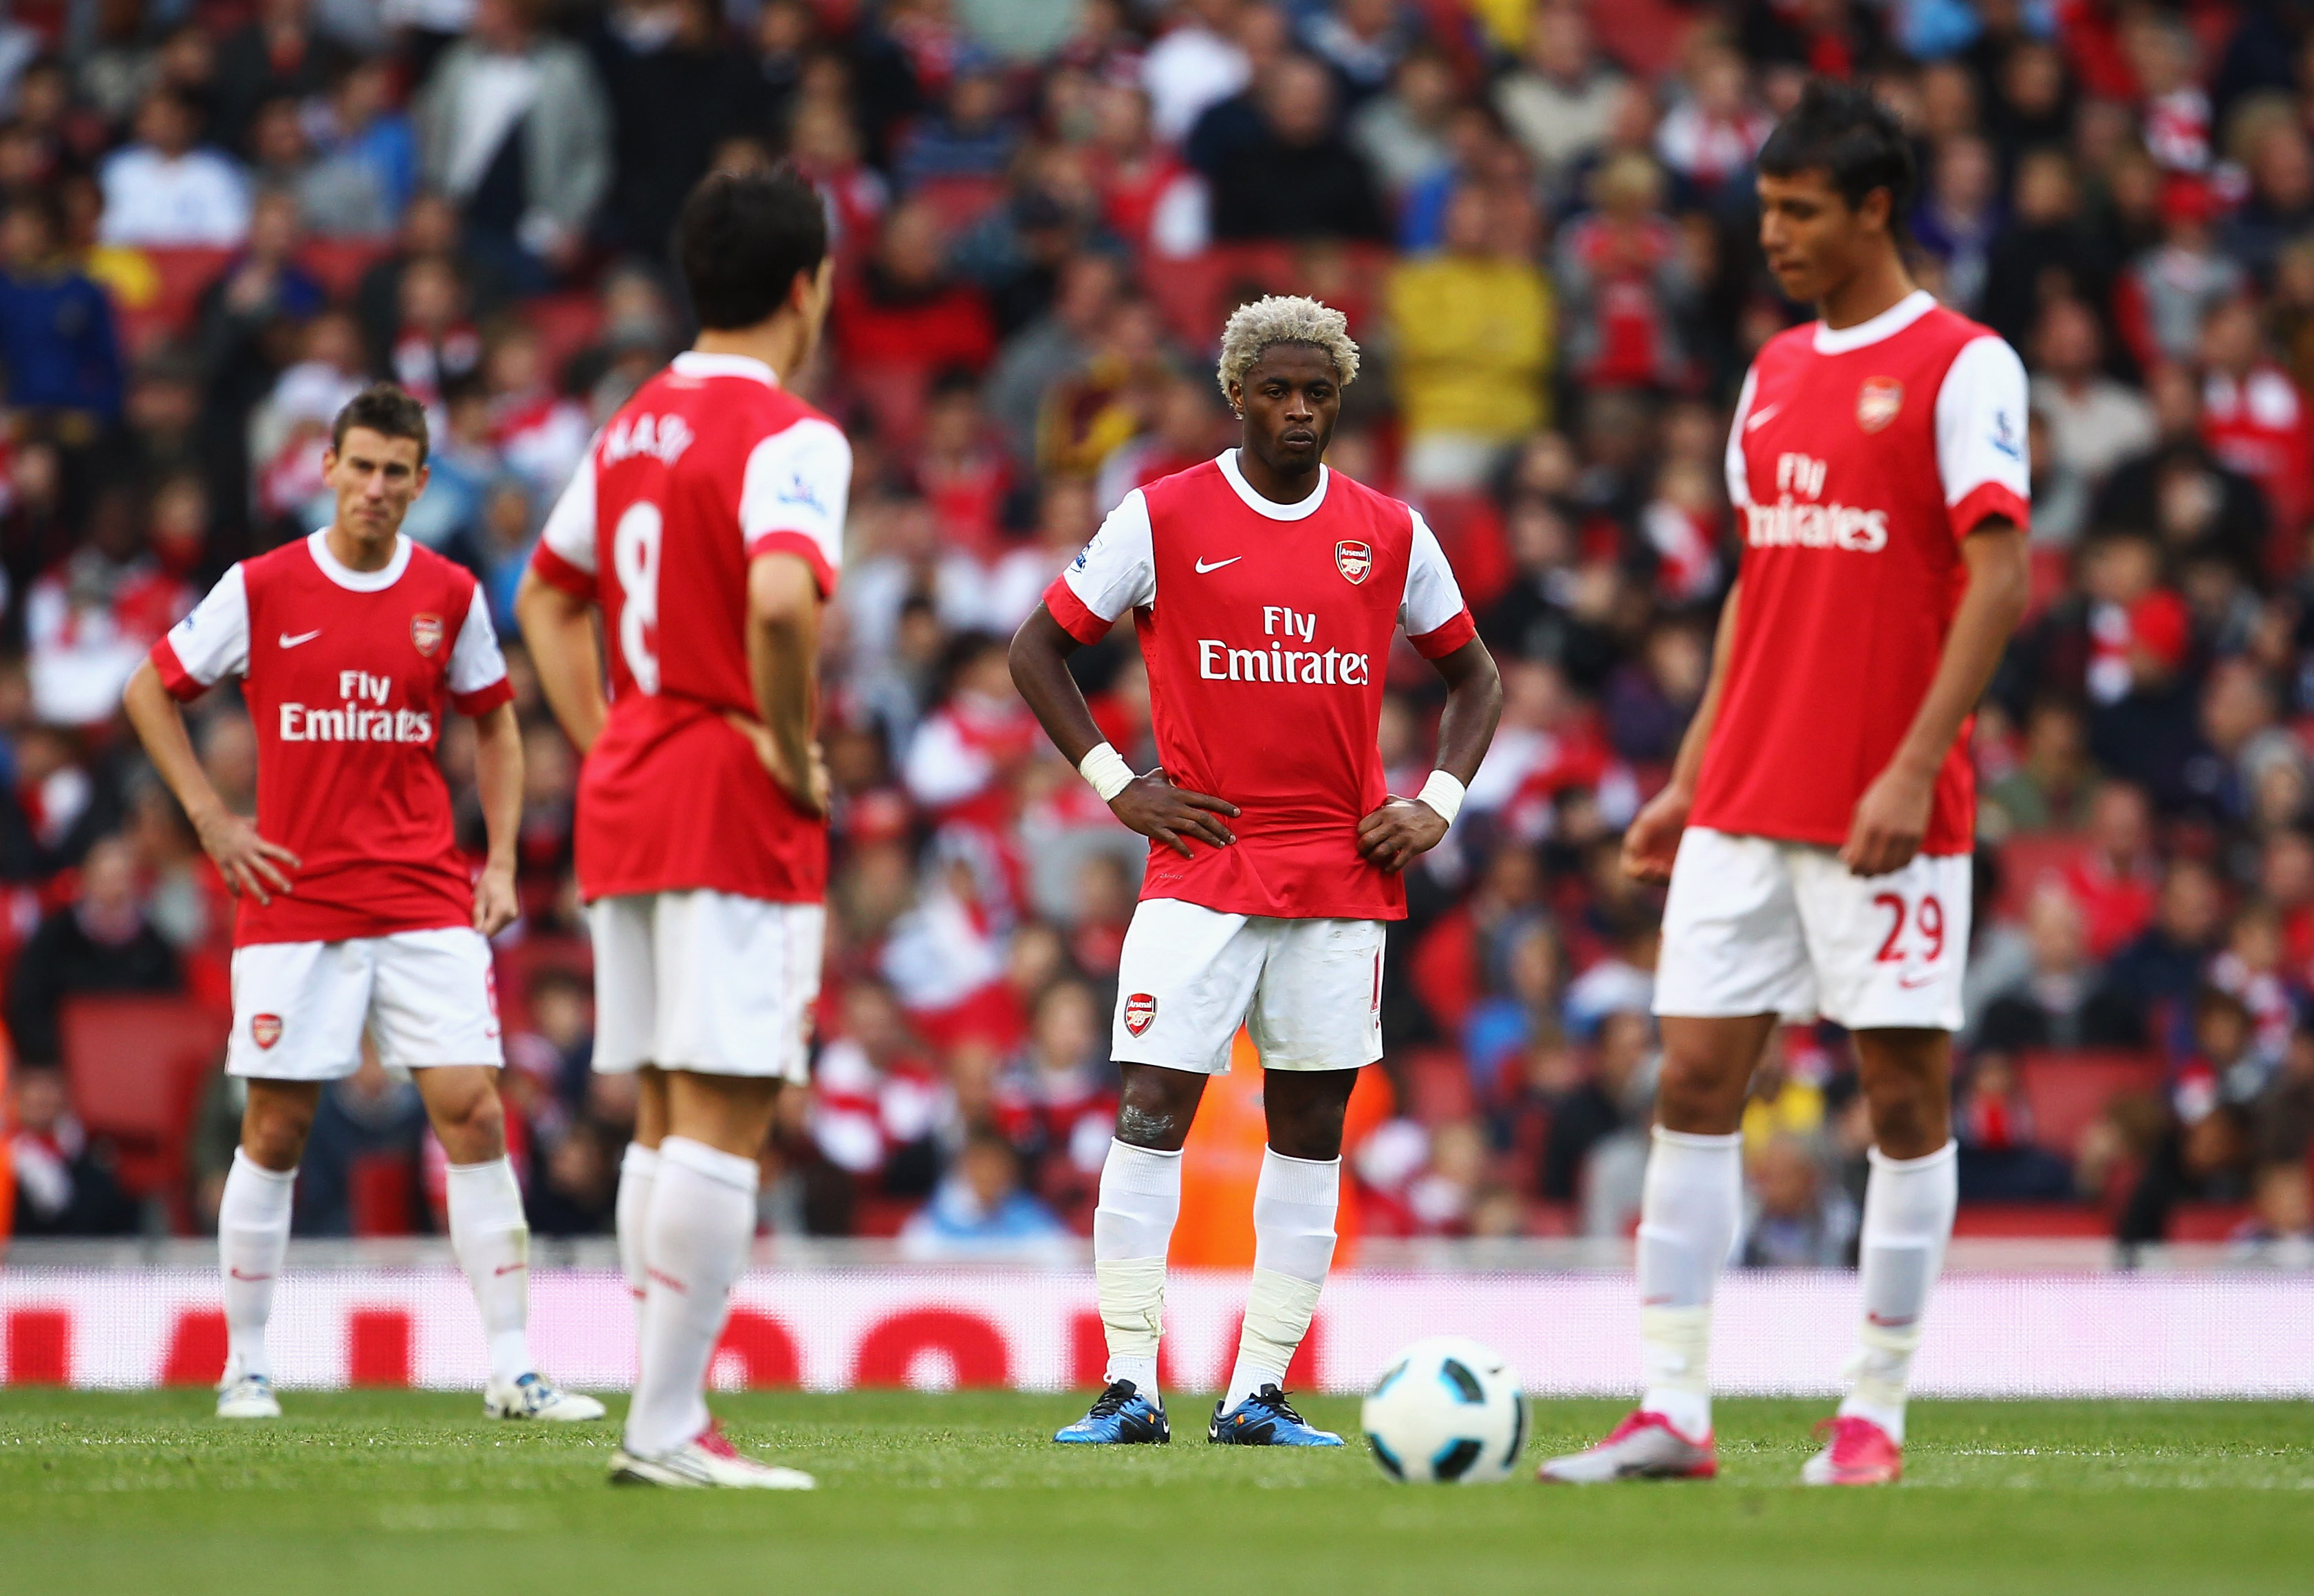 LONDON, ENGLAND - SEPTEMBER 25:  (L-R) Laurent Koscielny, Samir Nasri, Alex Song and Marouane Chamakh of Arsenal look dejected as Peter Odemwingie of West Bromwich Albion scores their first goal during the Barclays Premier League match between Arsenal and